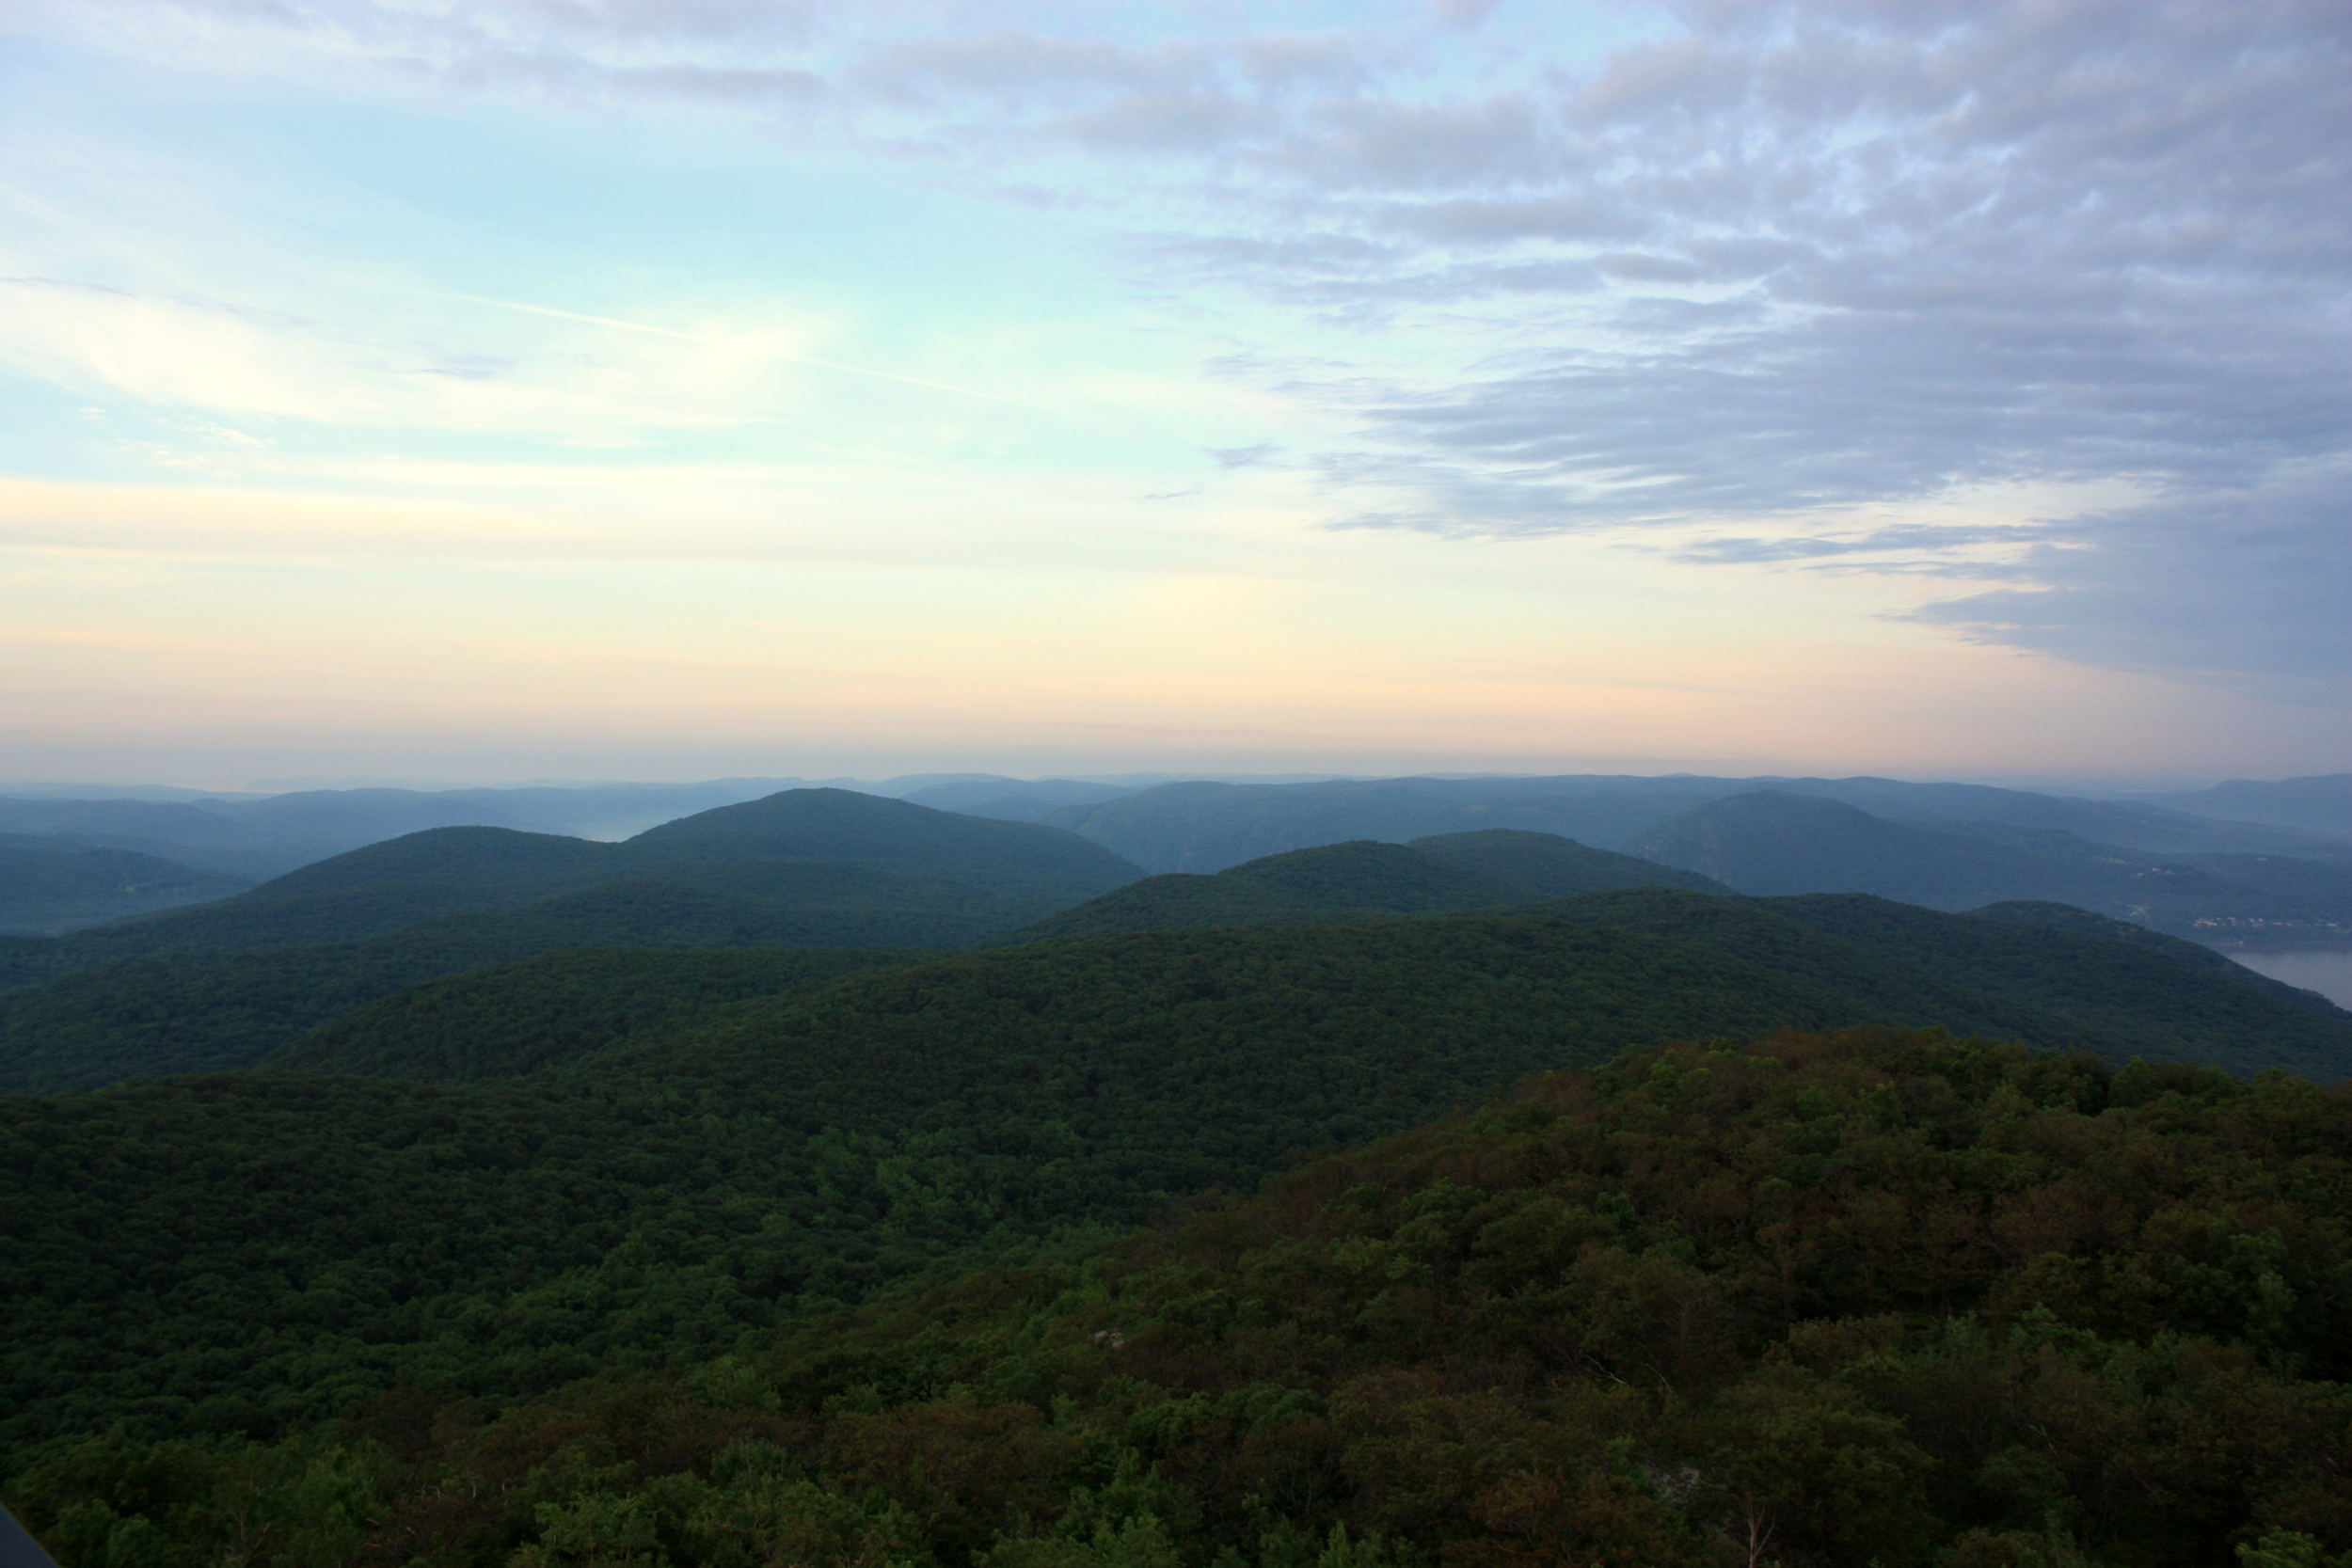 skyline-sunrise-Beacon-view-fire-tower-Hike-NY-Hudson-Valley-NYC.jpg